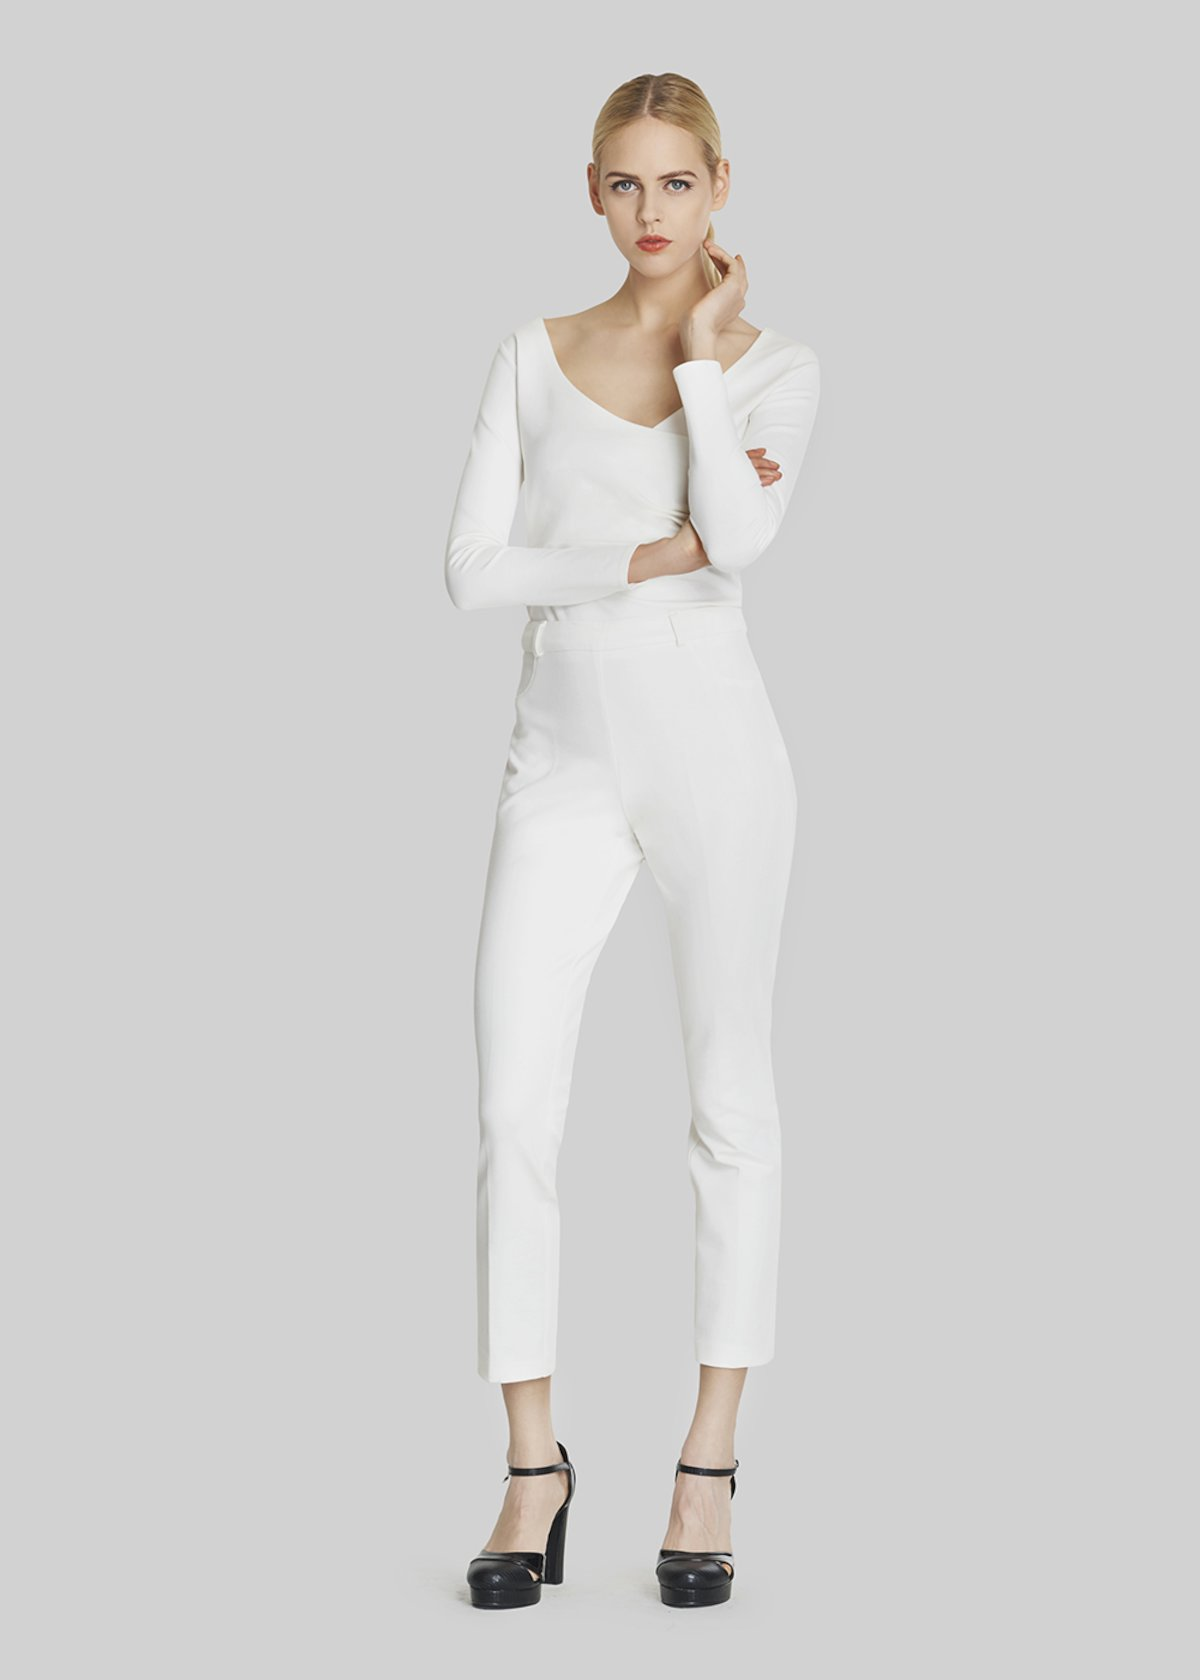 Pampero trousers with side zipper closure - White - Woman - Category image